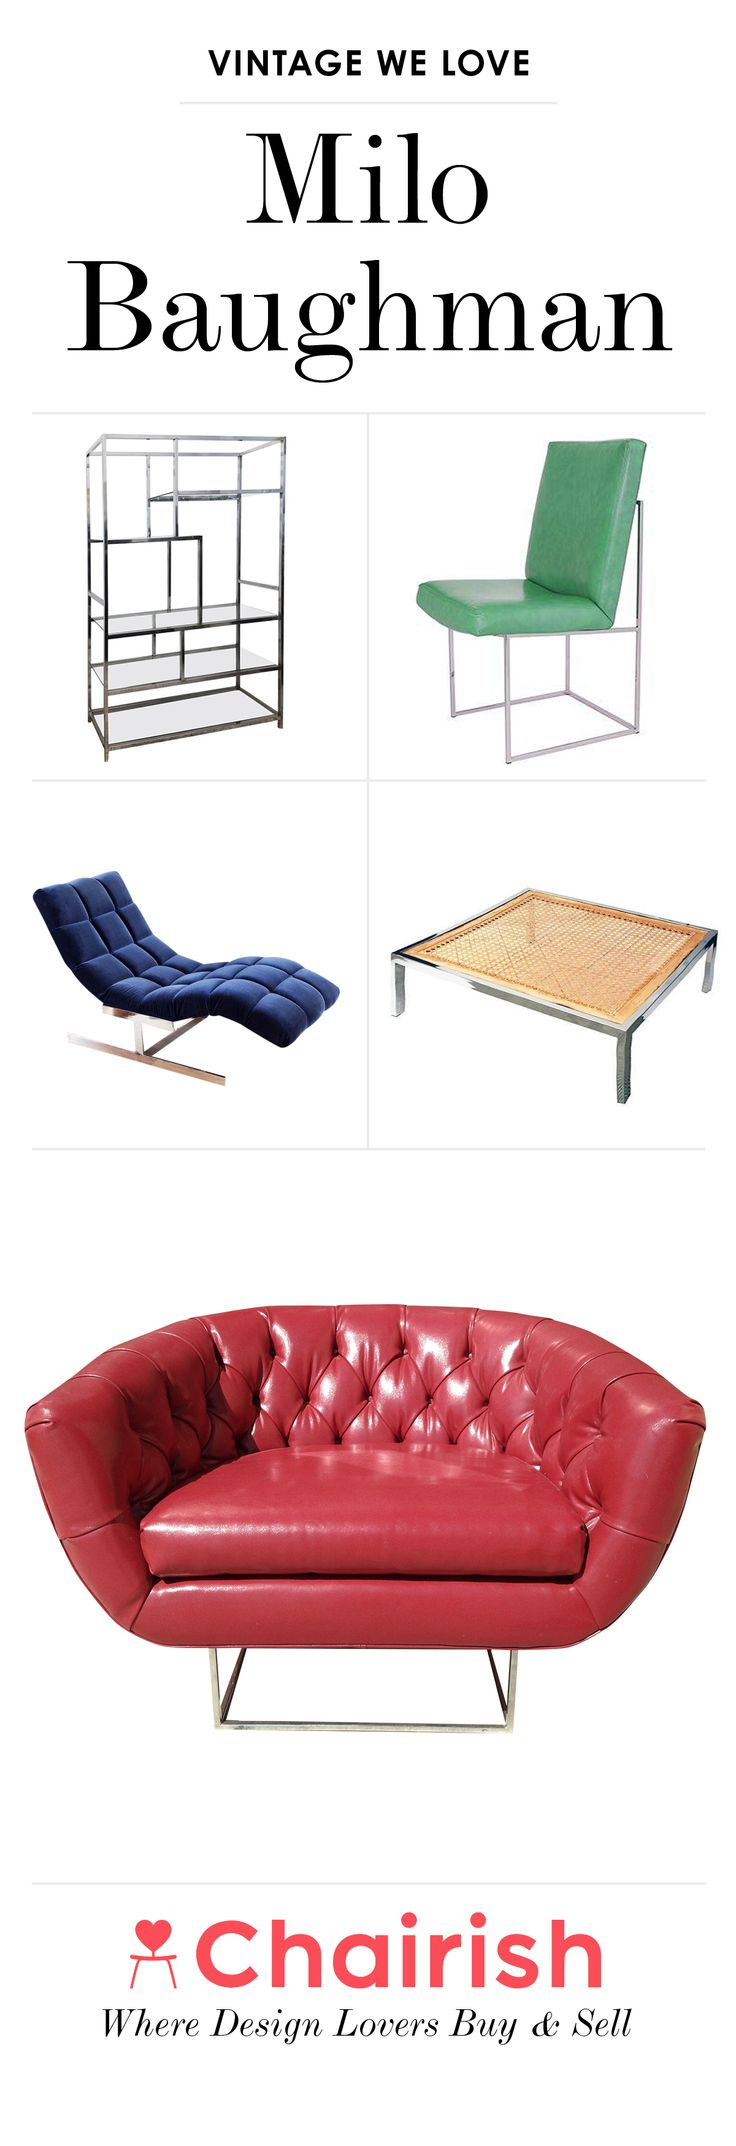 iconic designer furniture. milo baughman is easily one of the most recognizable names in midcentury modern and contemporary furniture design whether itu0027s an iconic lounge chair or designer